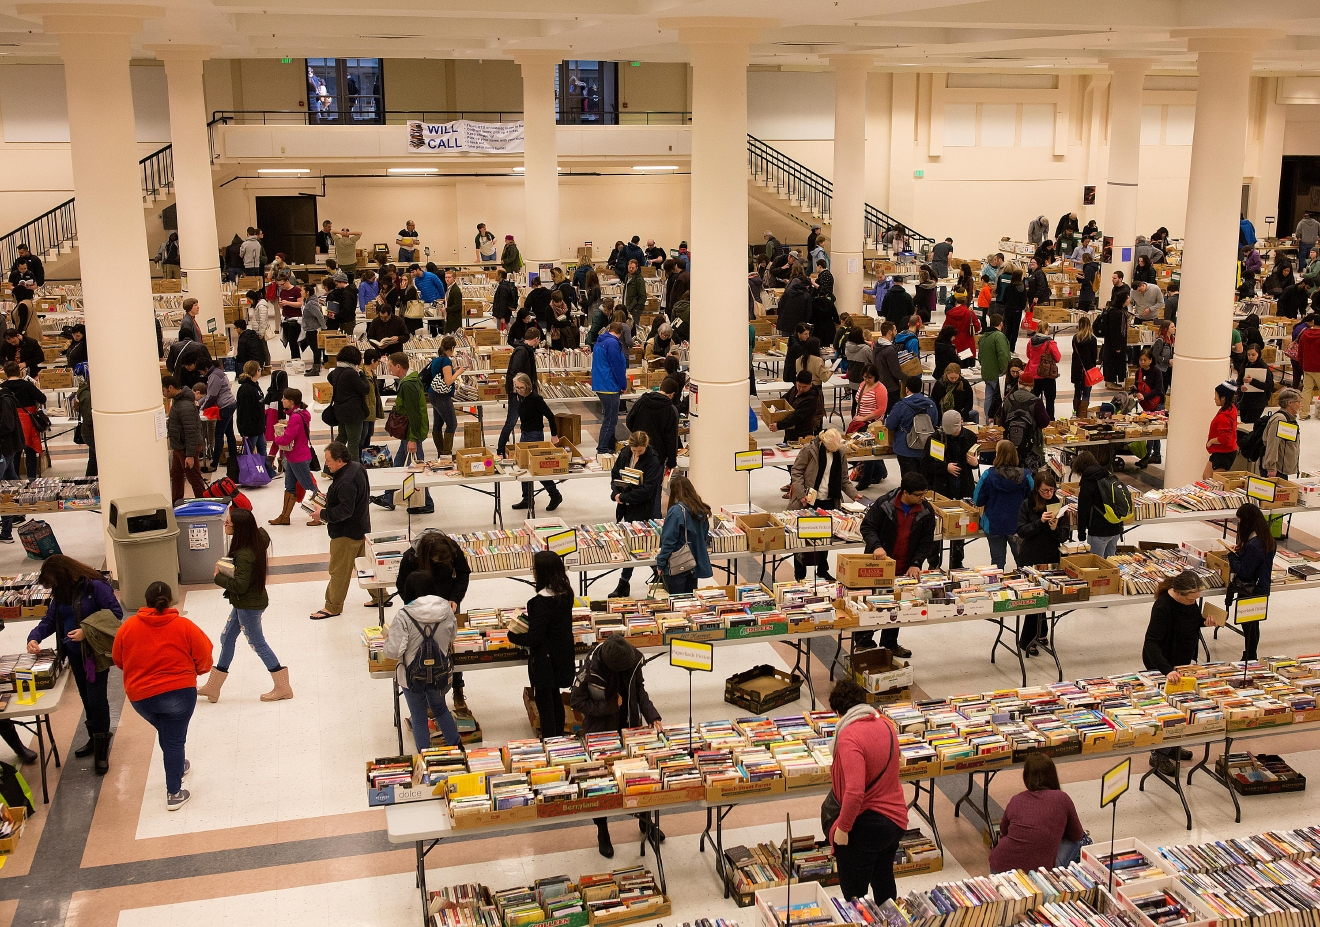 Thousands of book enthusiasts sort through some of the 100,000 titles for sale at the Big Book Sale 2017, put on by the Friends of The Seattle Public Library. Over 1,000 attendess flooded the doors in the first 45 minutes on Saturday morning. (Sy Bean / Seattle Refined)